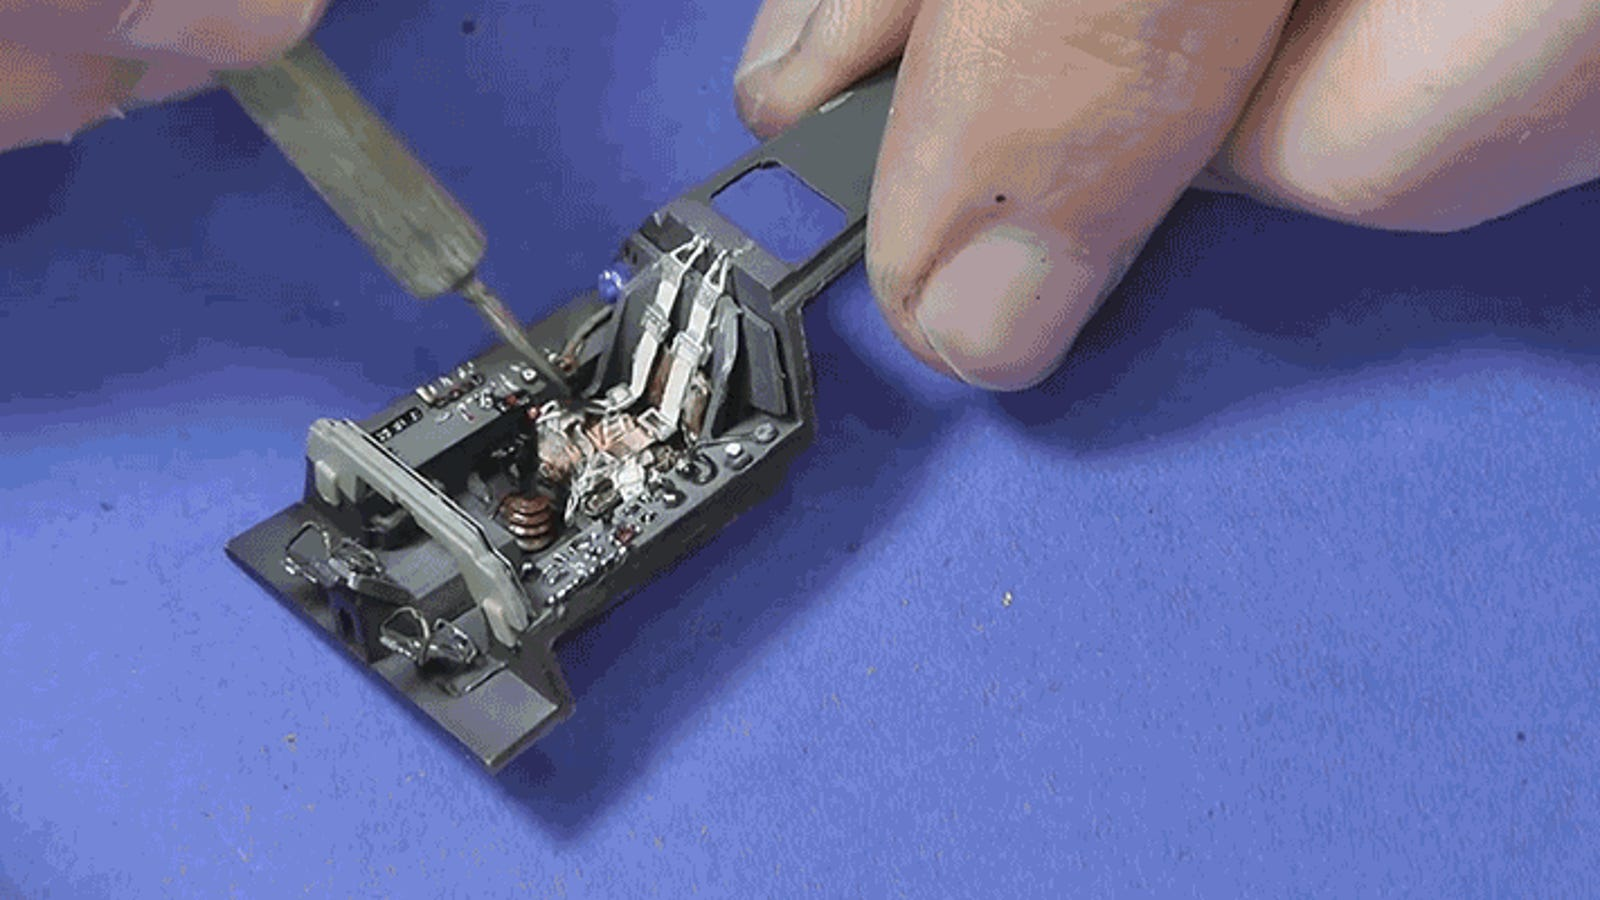 Watch the World's Most Patient Model Maker Build Flawless Airplane Replicas